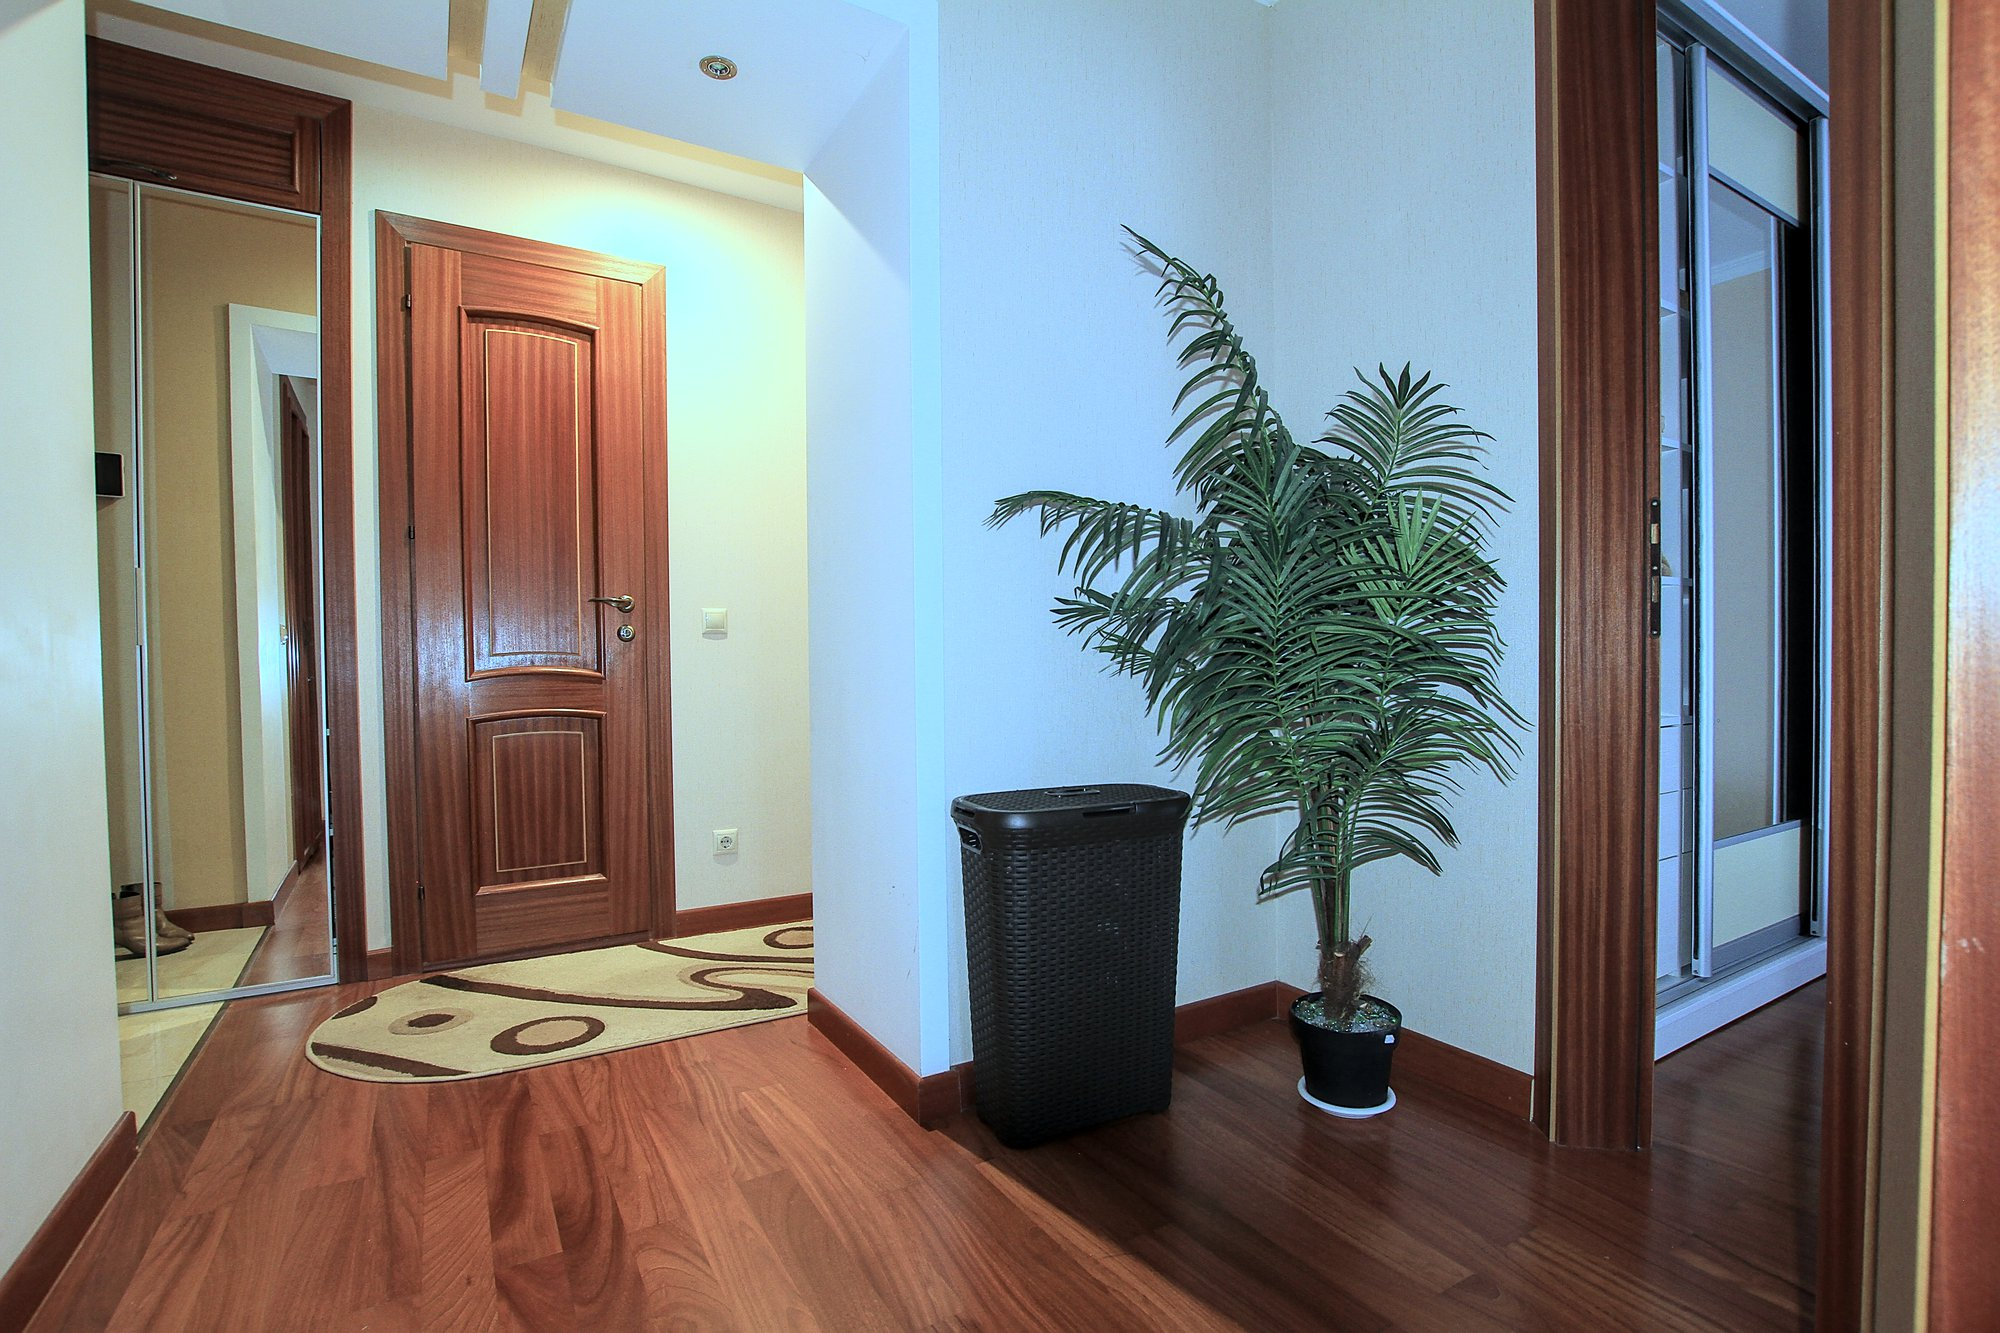 A-40-3-room-apartment-for-rent-in-Chisinau-Botanica_14.jpg